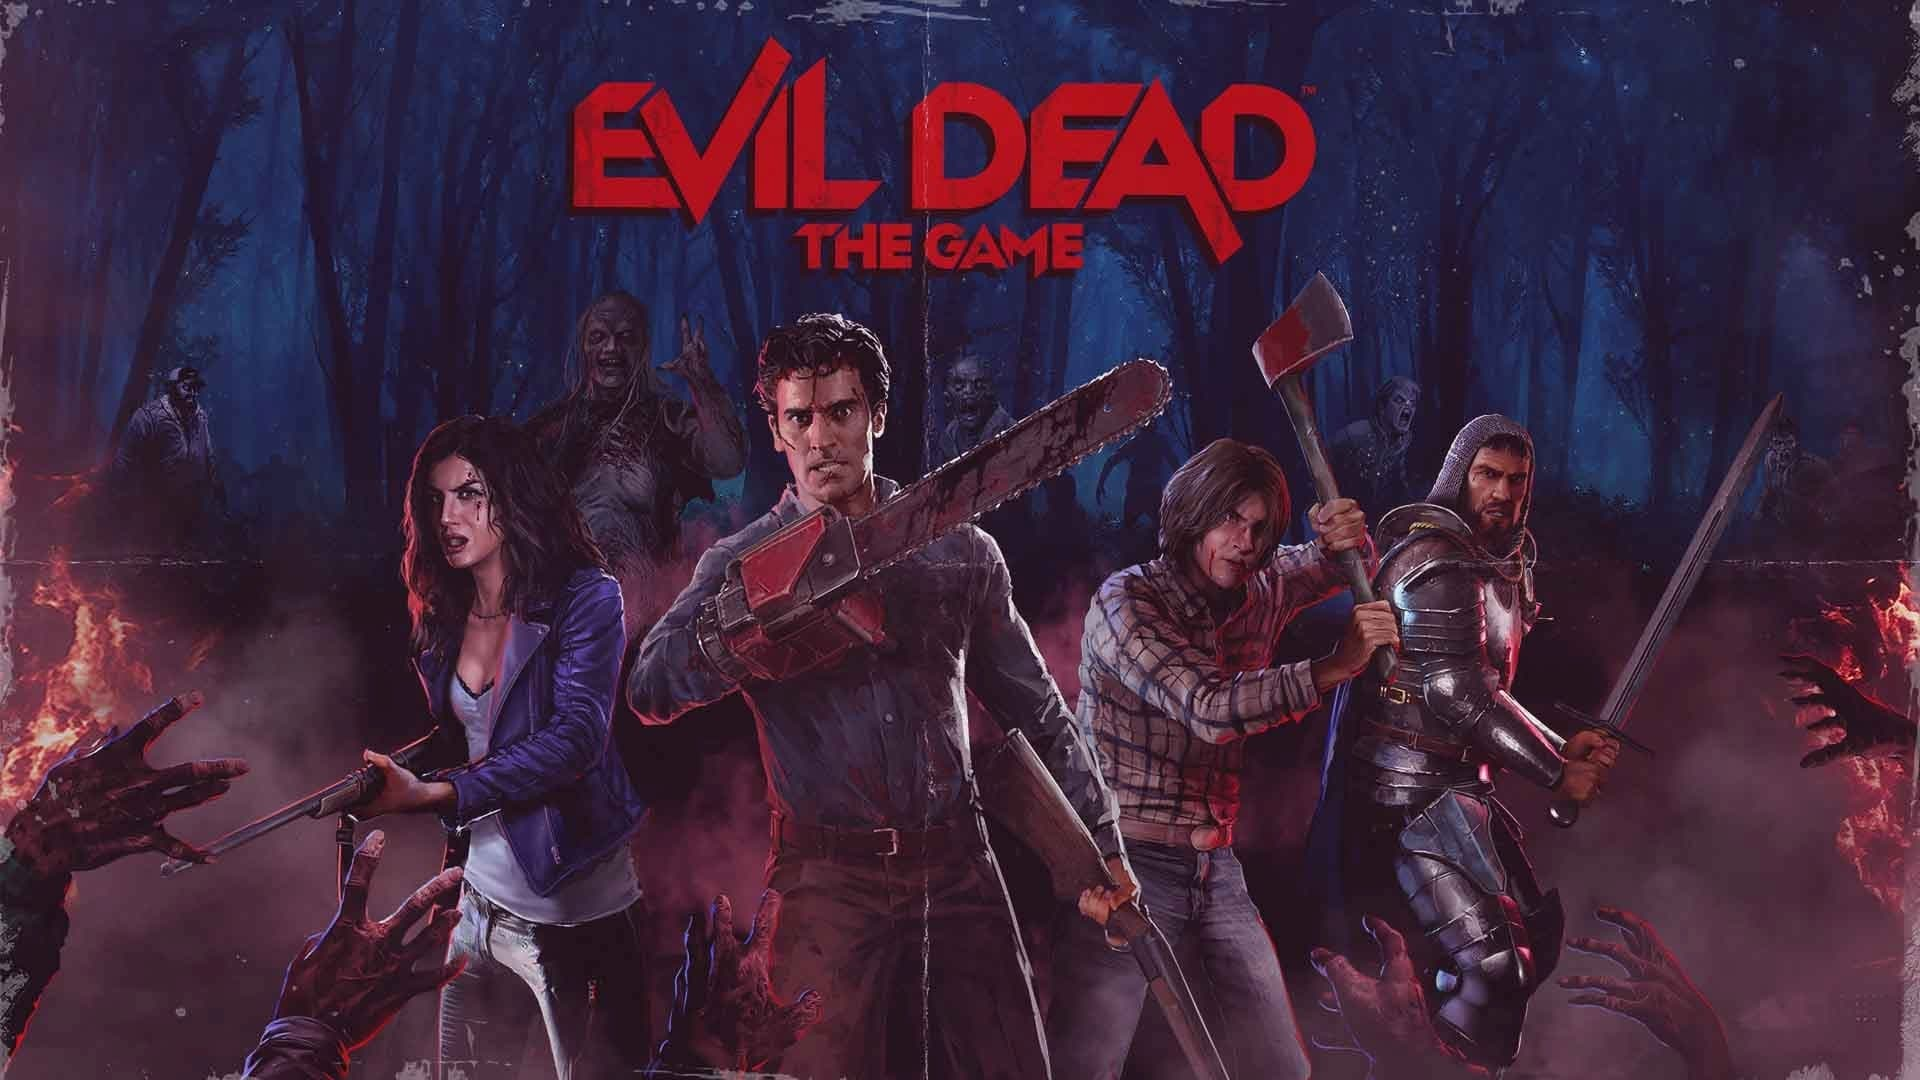 Evil Dead: The Game is now delayed until 2022